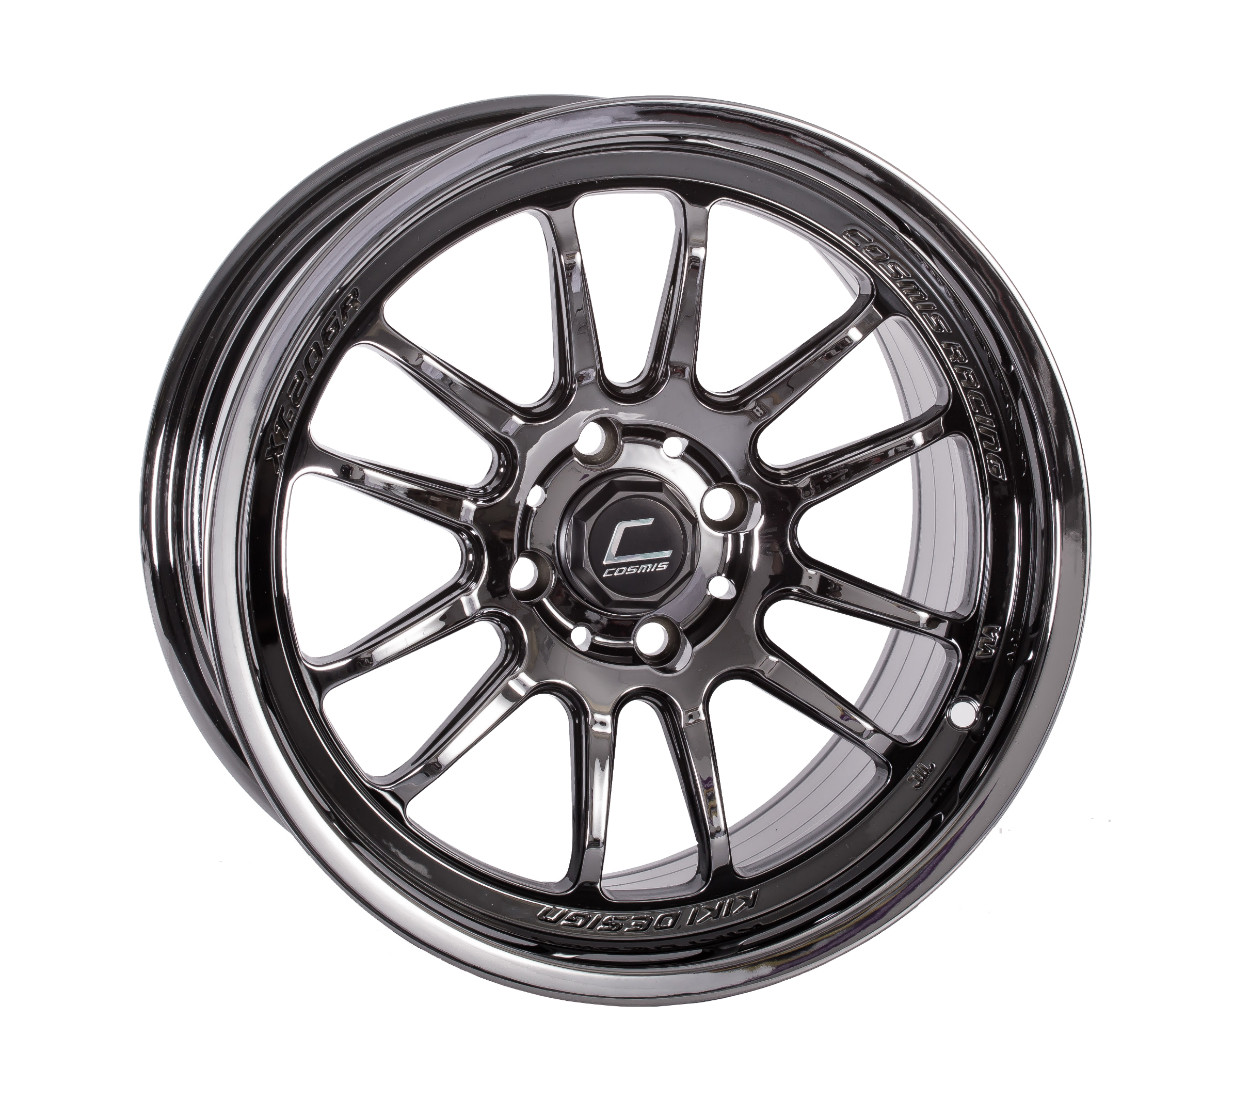 "Cosmis Racing XT-206R Wheel in 15x8"" - Black Chrome"